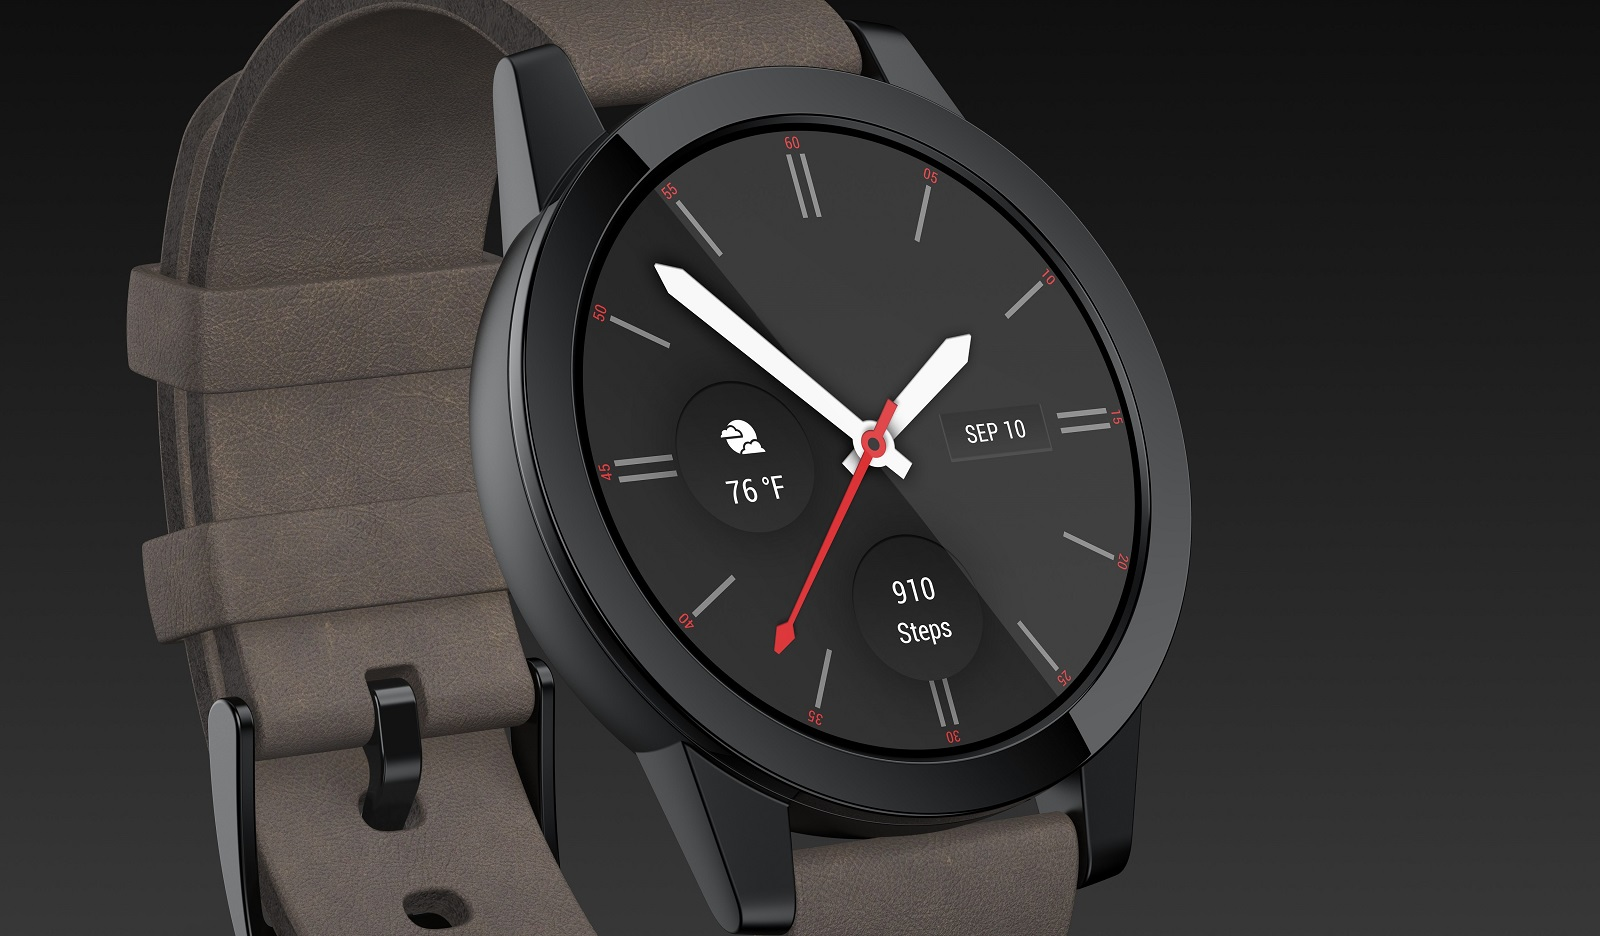 El Qualcomm Snapdragon Wear 3100 ya es oficial con multitud de mejoras para los smartwatches con Wear OS